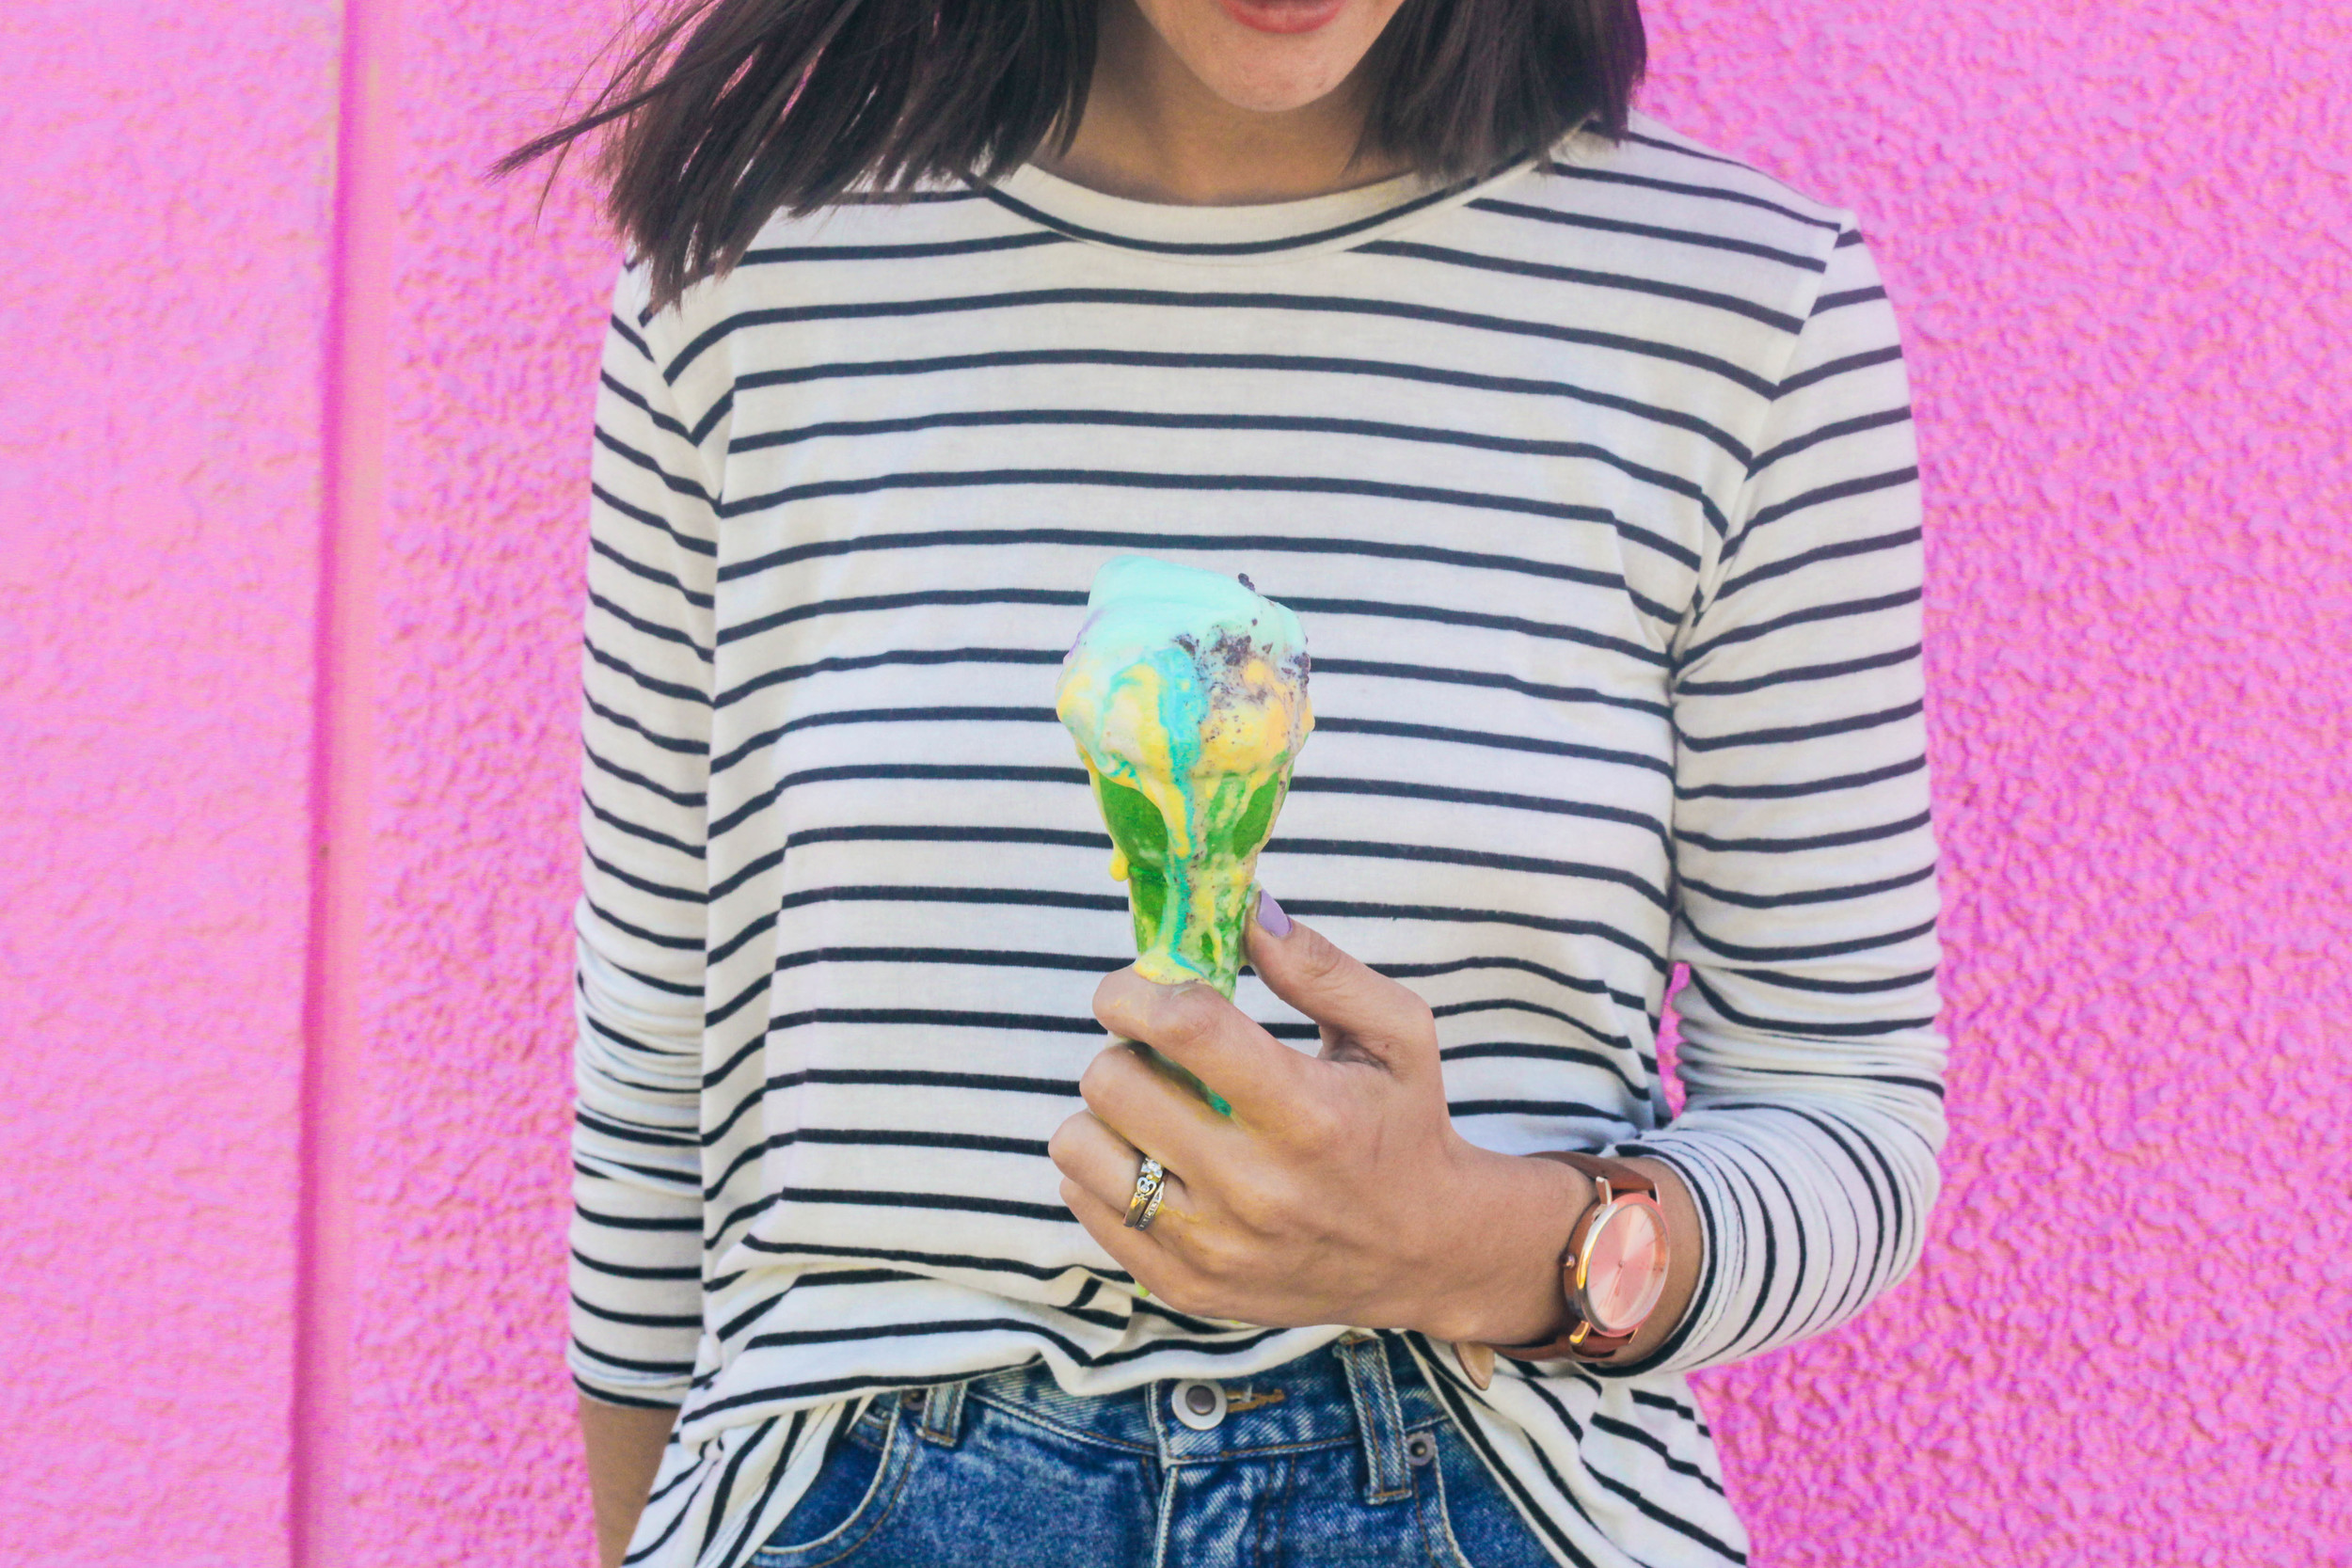 Ice Cream cones and arvo watches giveaway style vancouver gelato summer-30.jpg